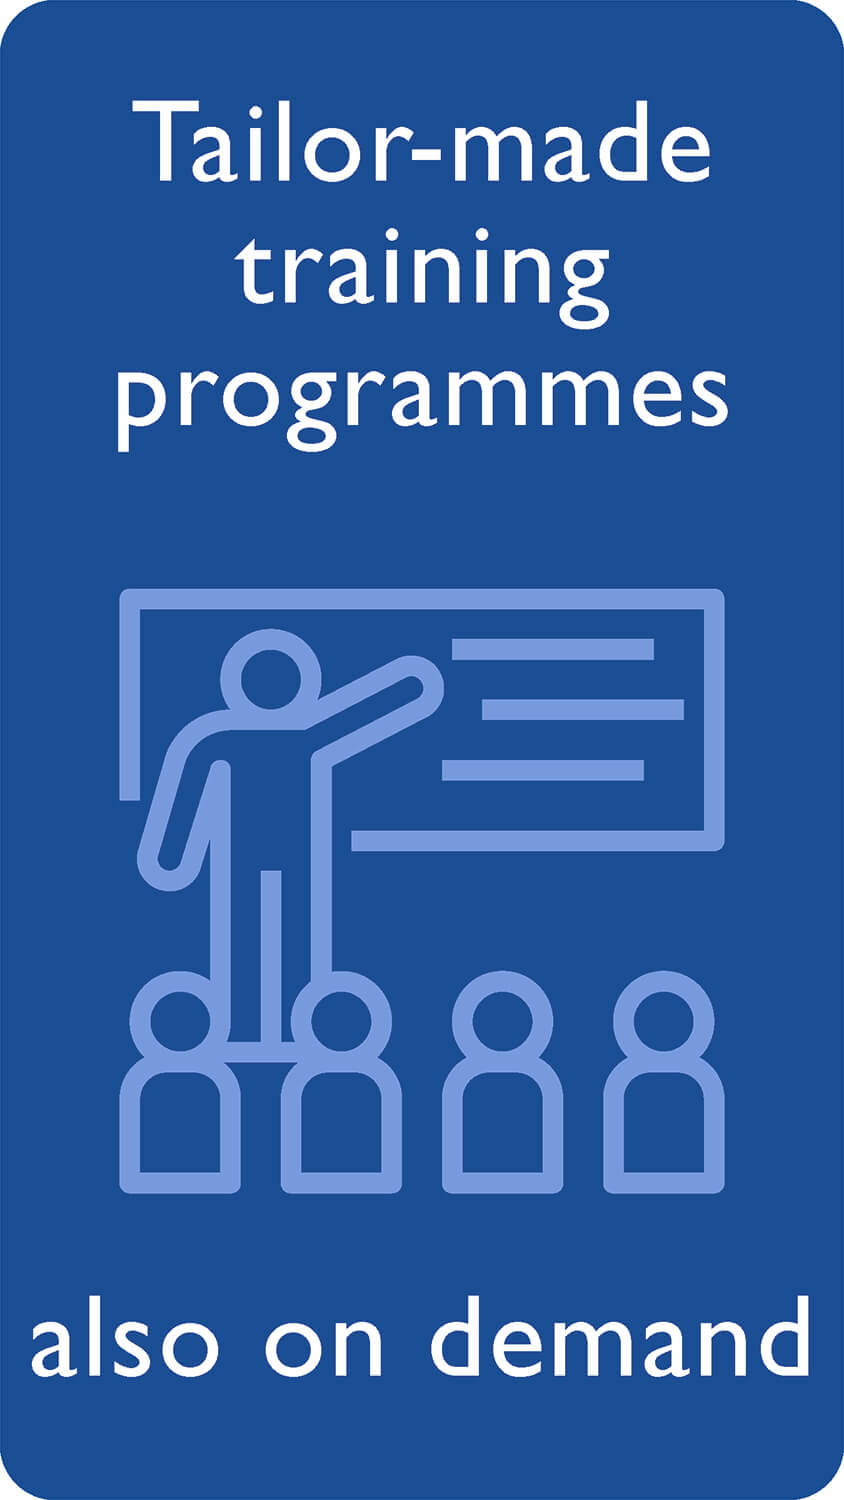 Tailor-made training programmes also on demand